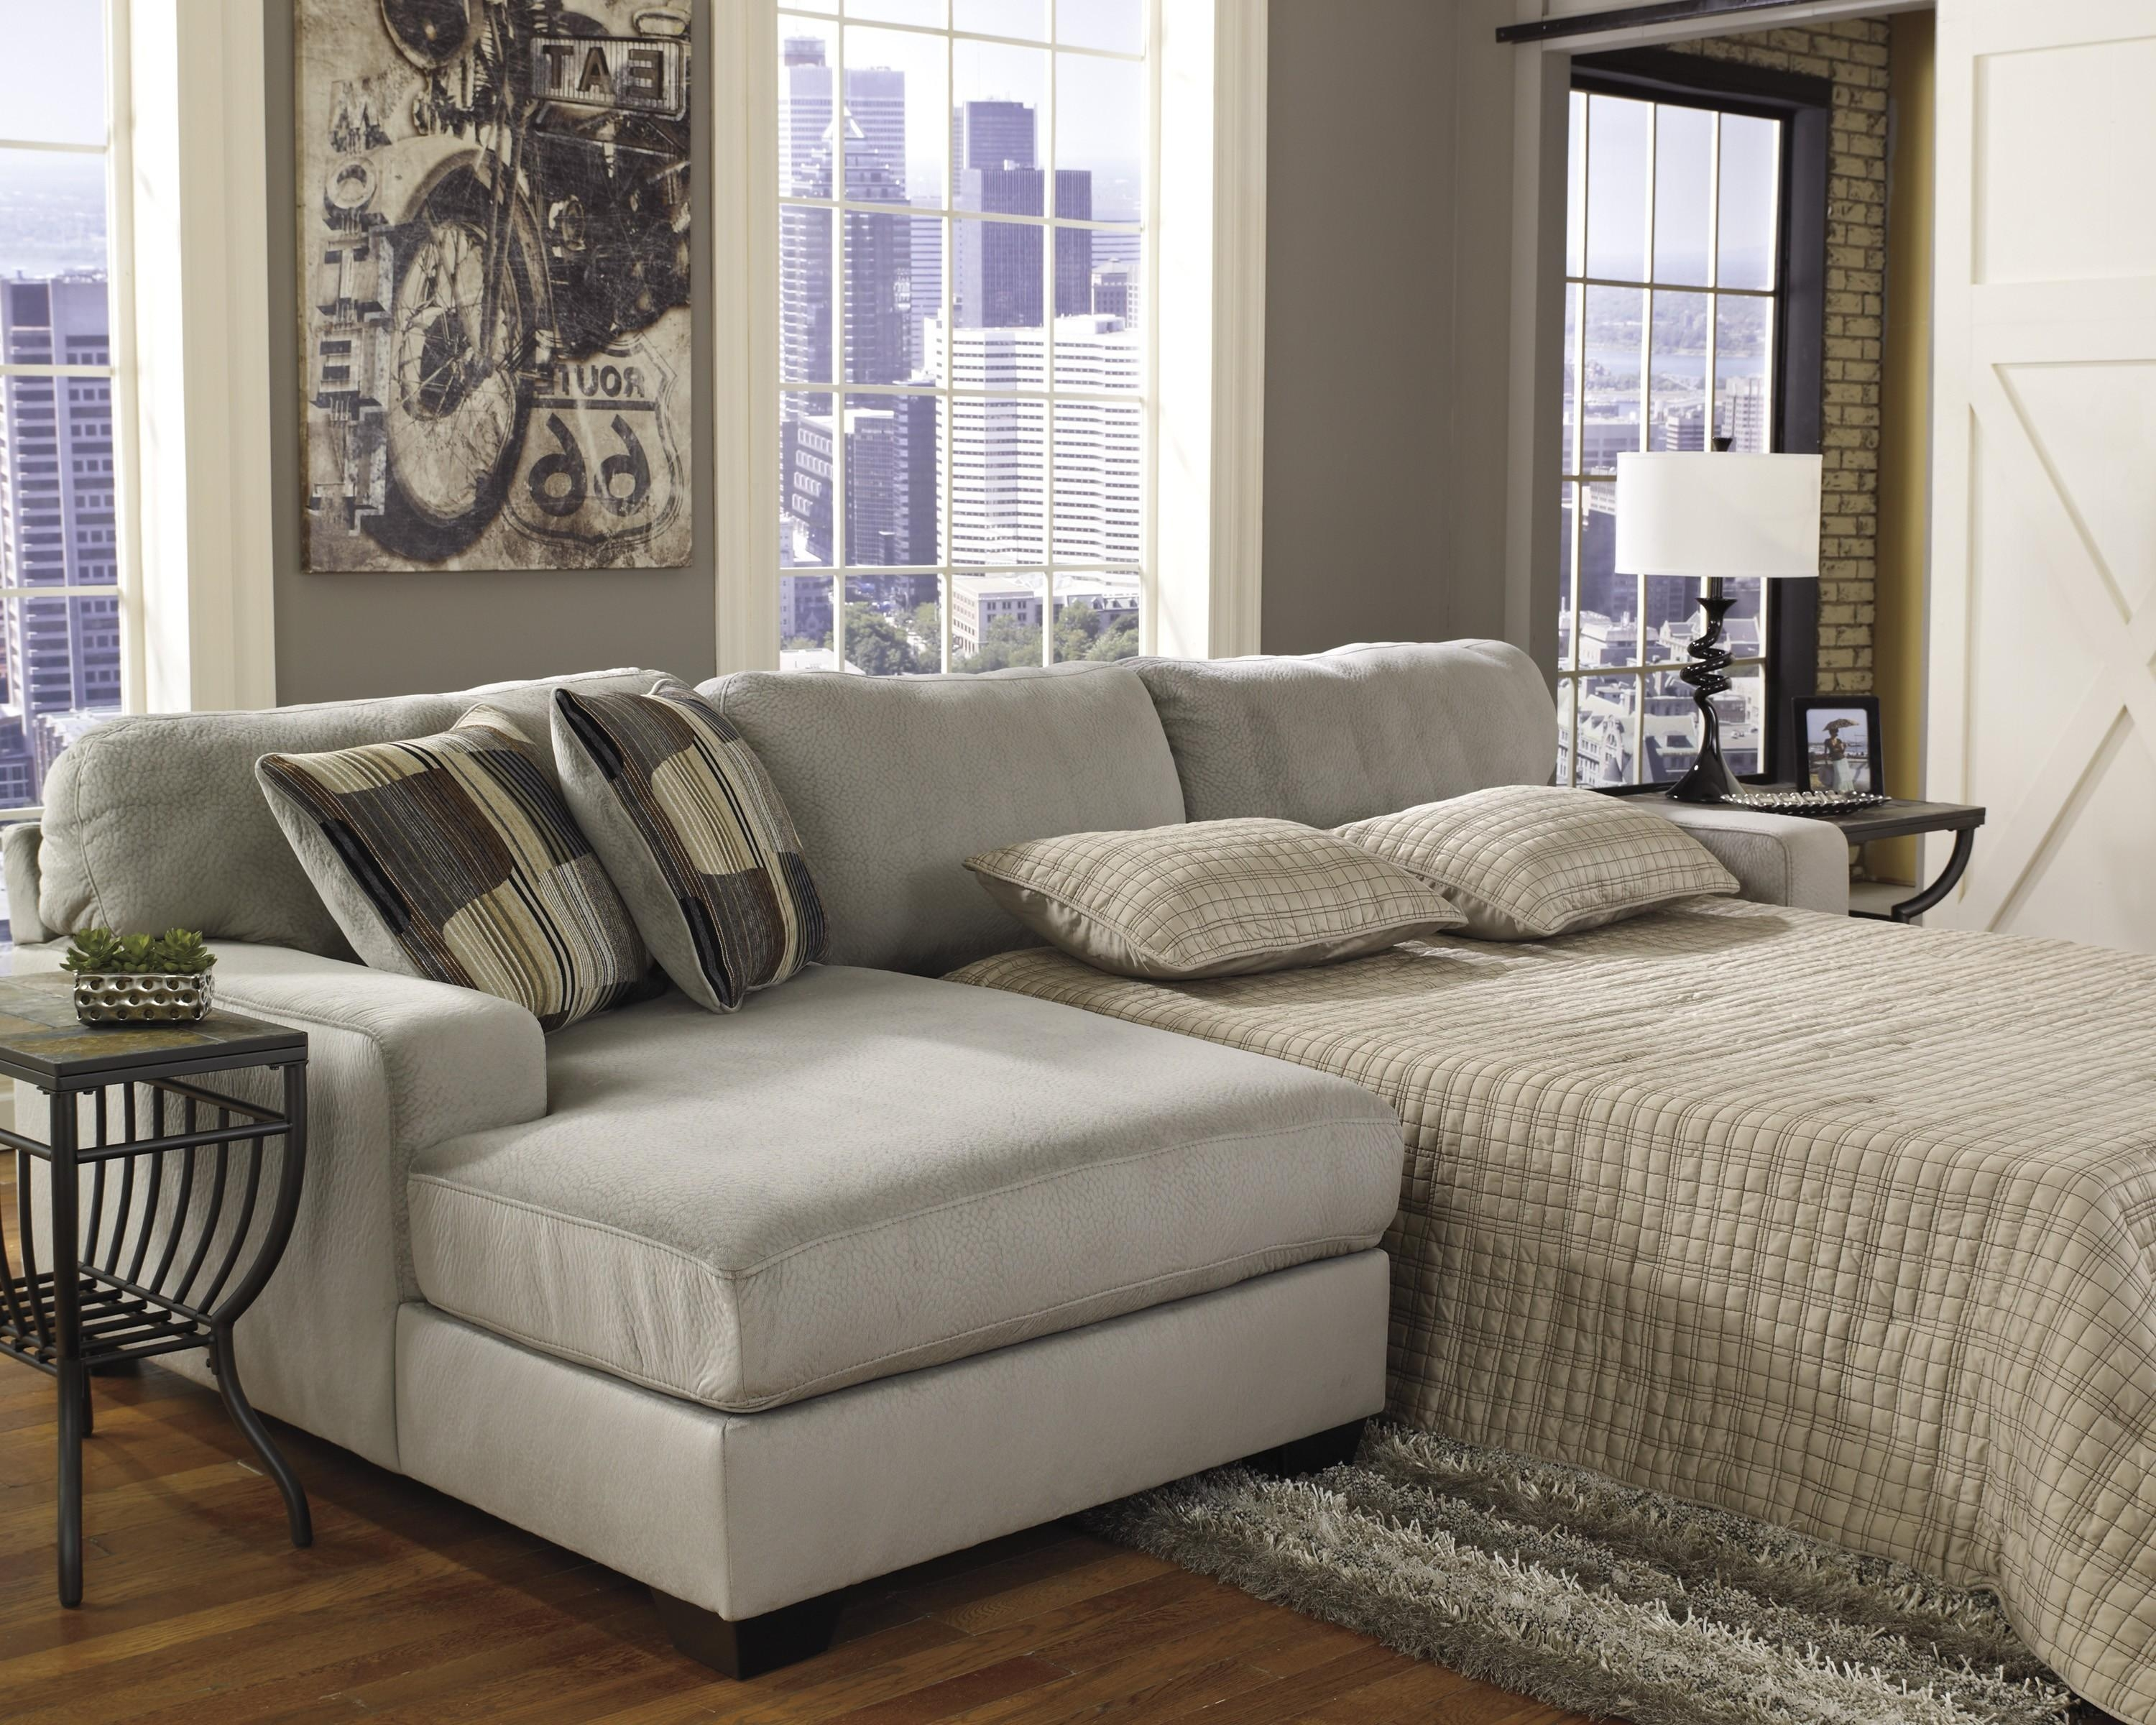 Interior: Luxury Oversized Sectional Sofa For Awesome Living Room Within Huge Sofas (View 17 of 20)